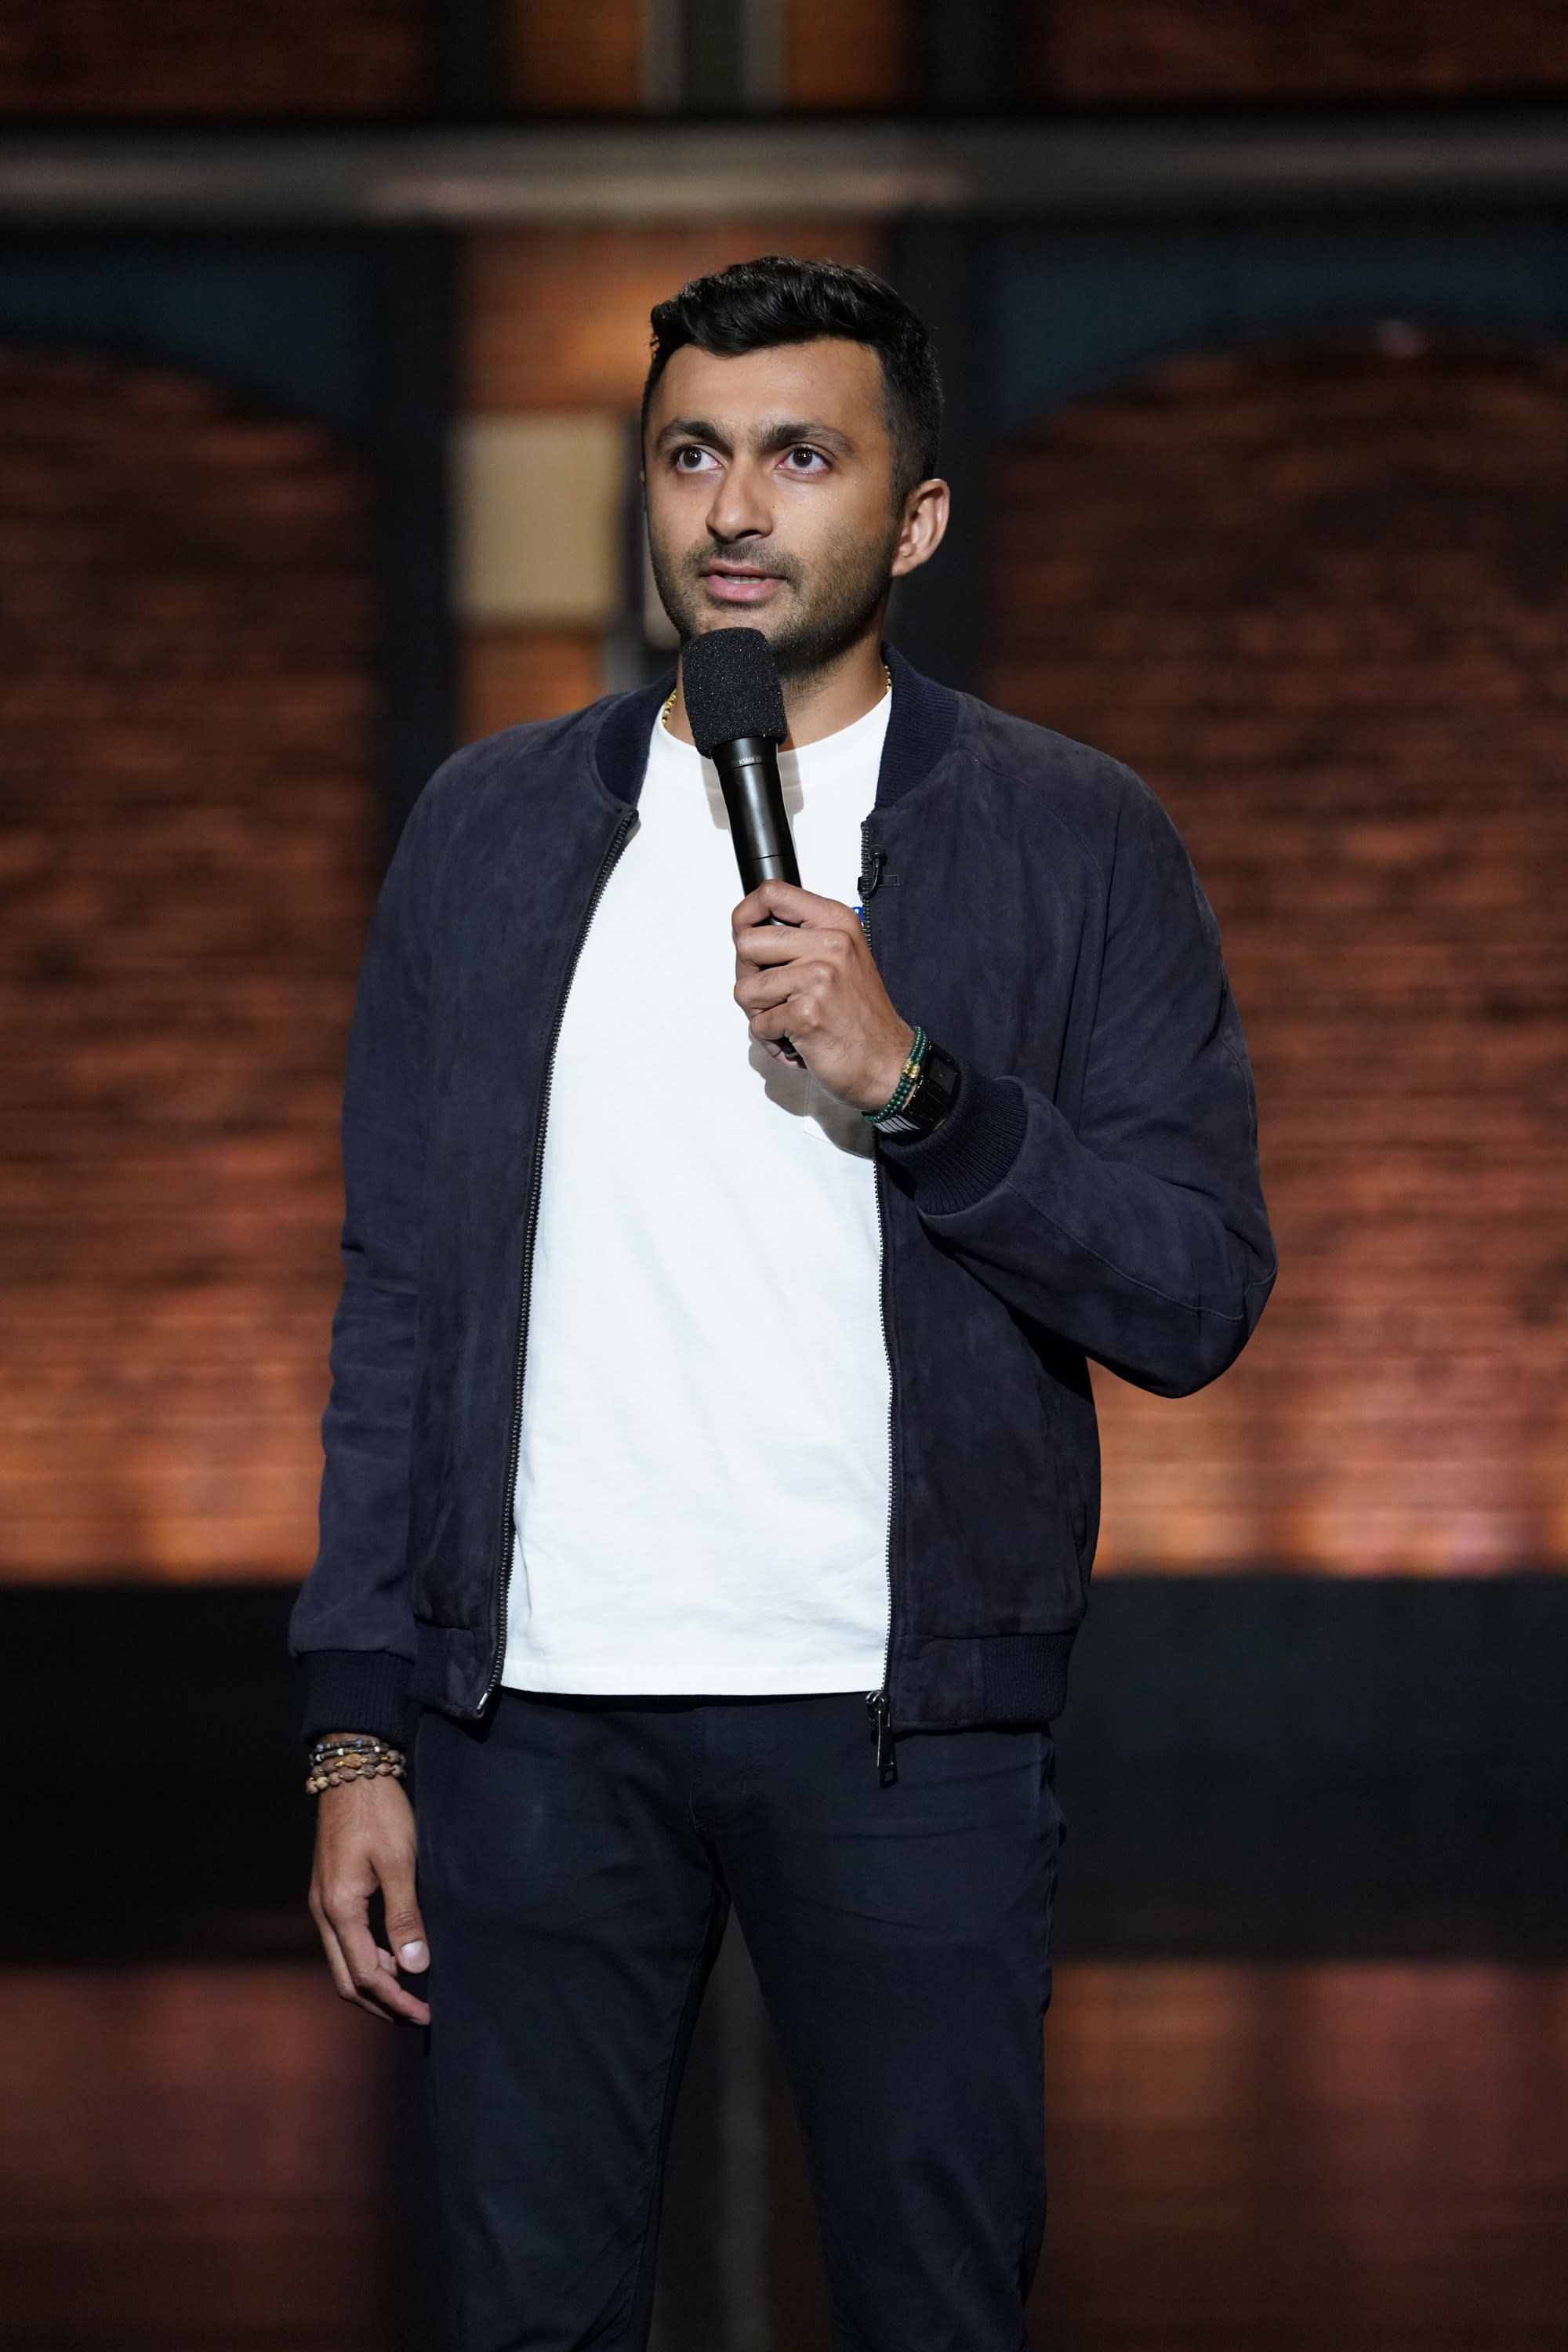 Former 'SNL' writer Nimesh Patel kicked off stage at Columbia University for 'inappropriate' standup set